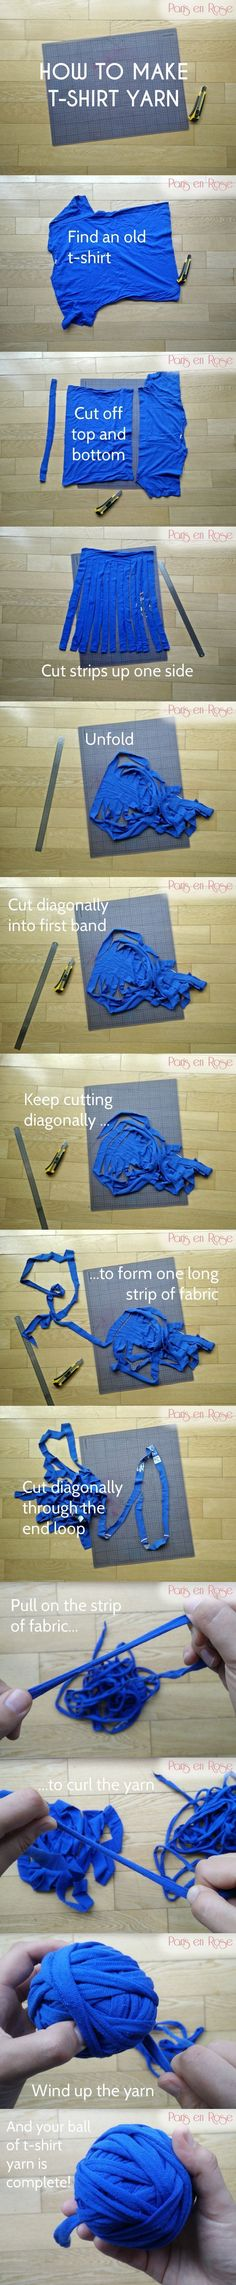 How to make t-shirt yarn : recycle old t-shirst into something new by cutting them up to make yarn #diyragrugtutorial